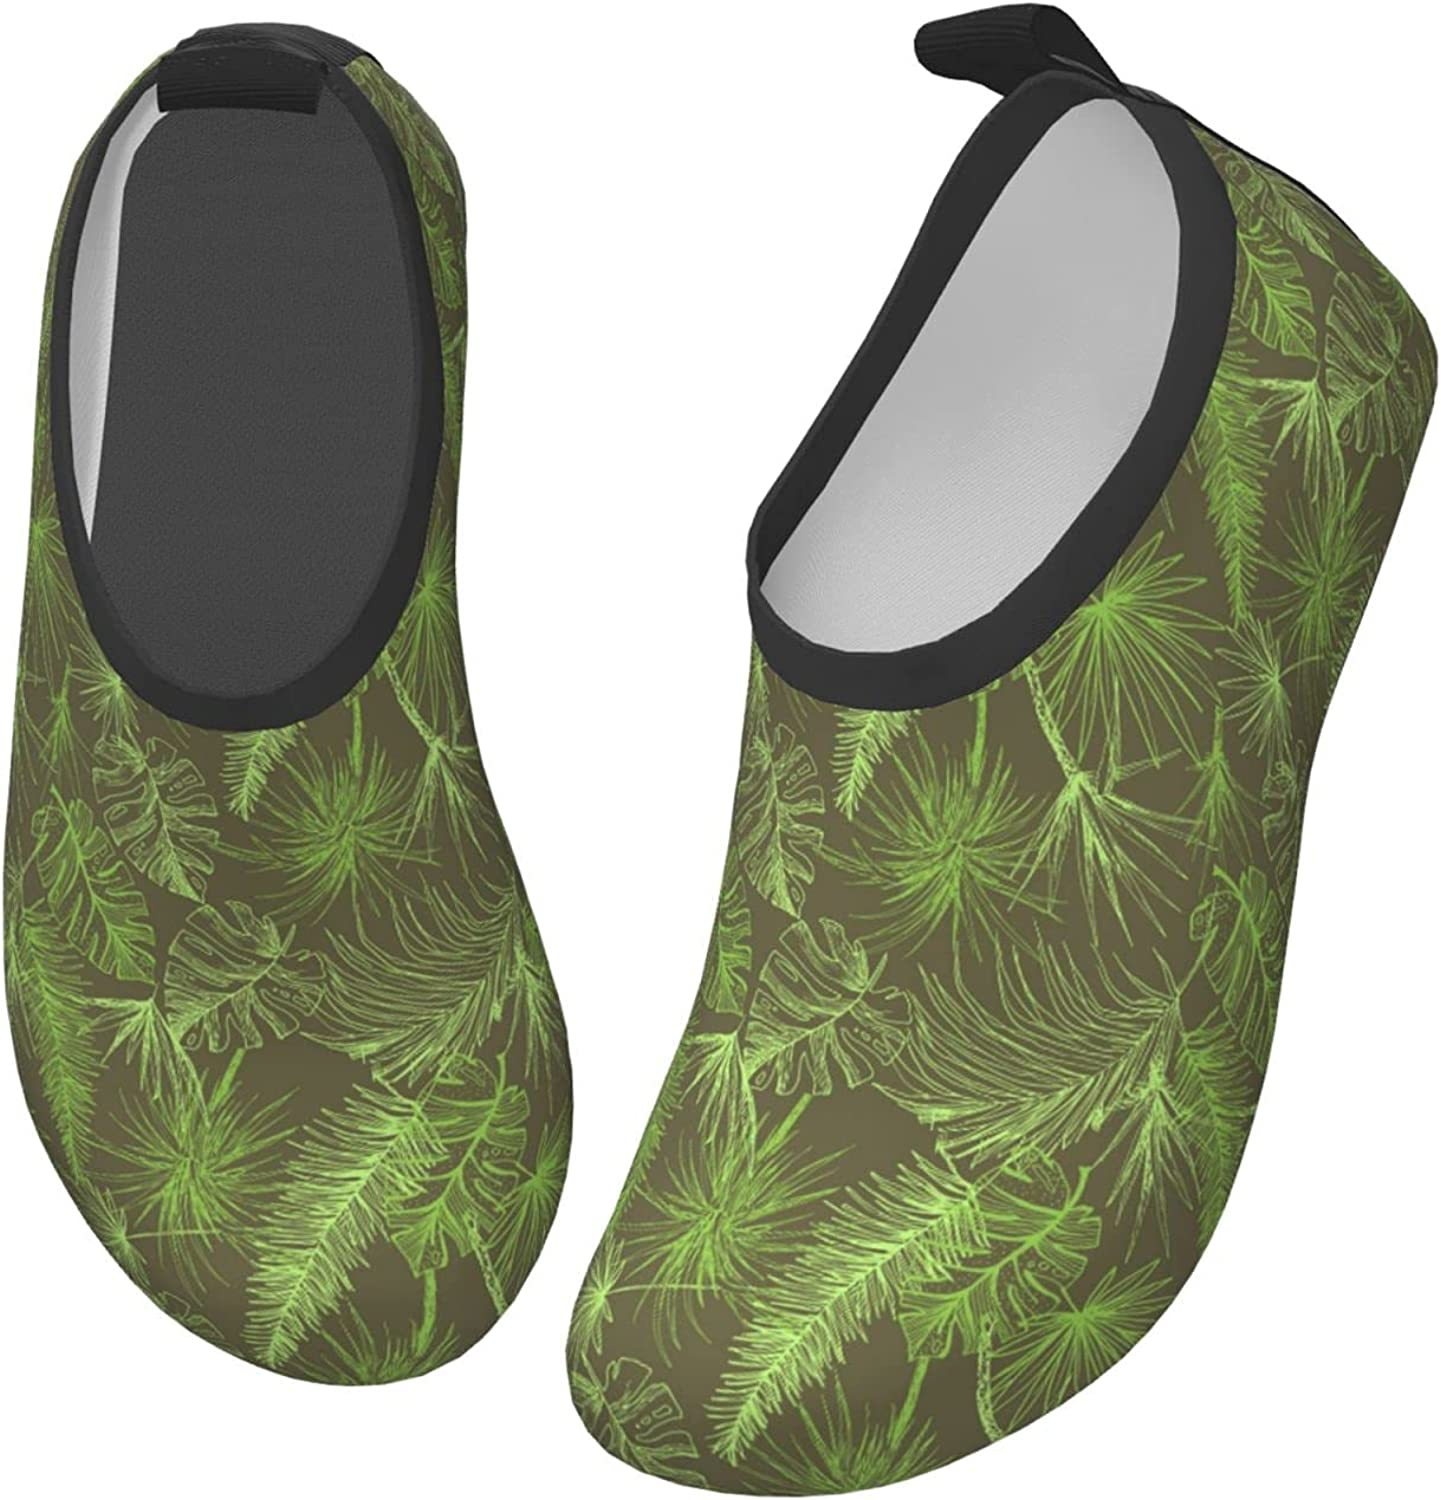 Jedenkuku Style Coconut Leaves Hawaii Children's Water Shoes Feel Barefoot for Swimming Beach Boating Surfing Yoga